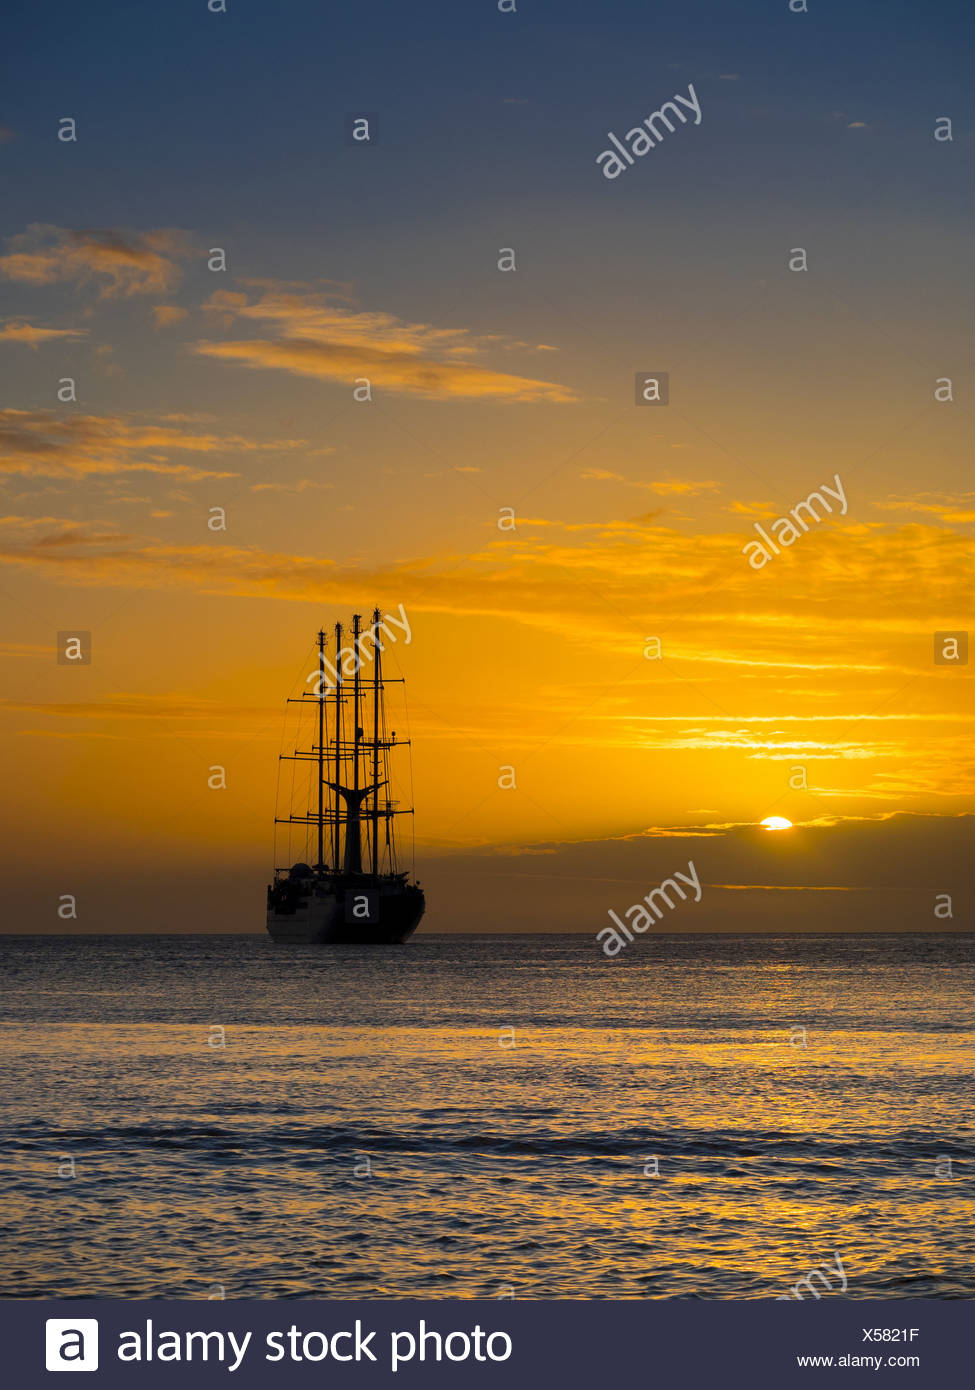 Caribbean, St. Lucia, Sailing cruise ship Wind Star at sunset - Stock Image